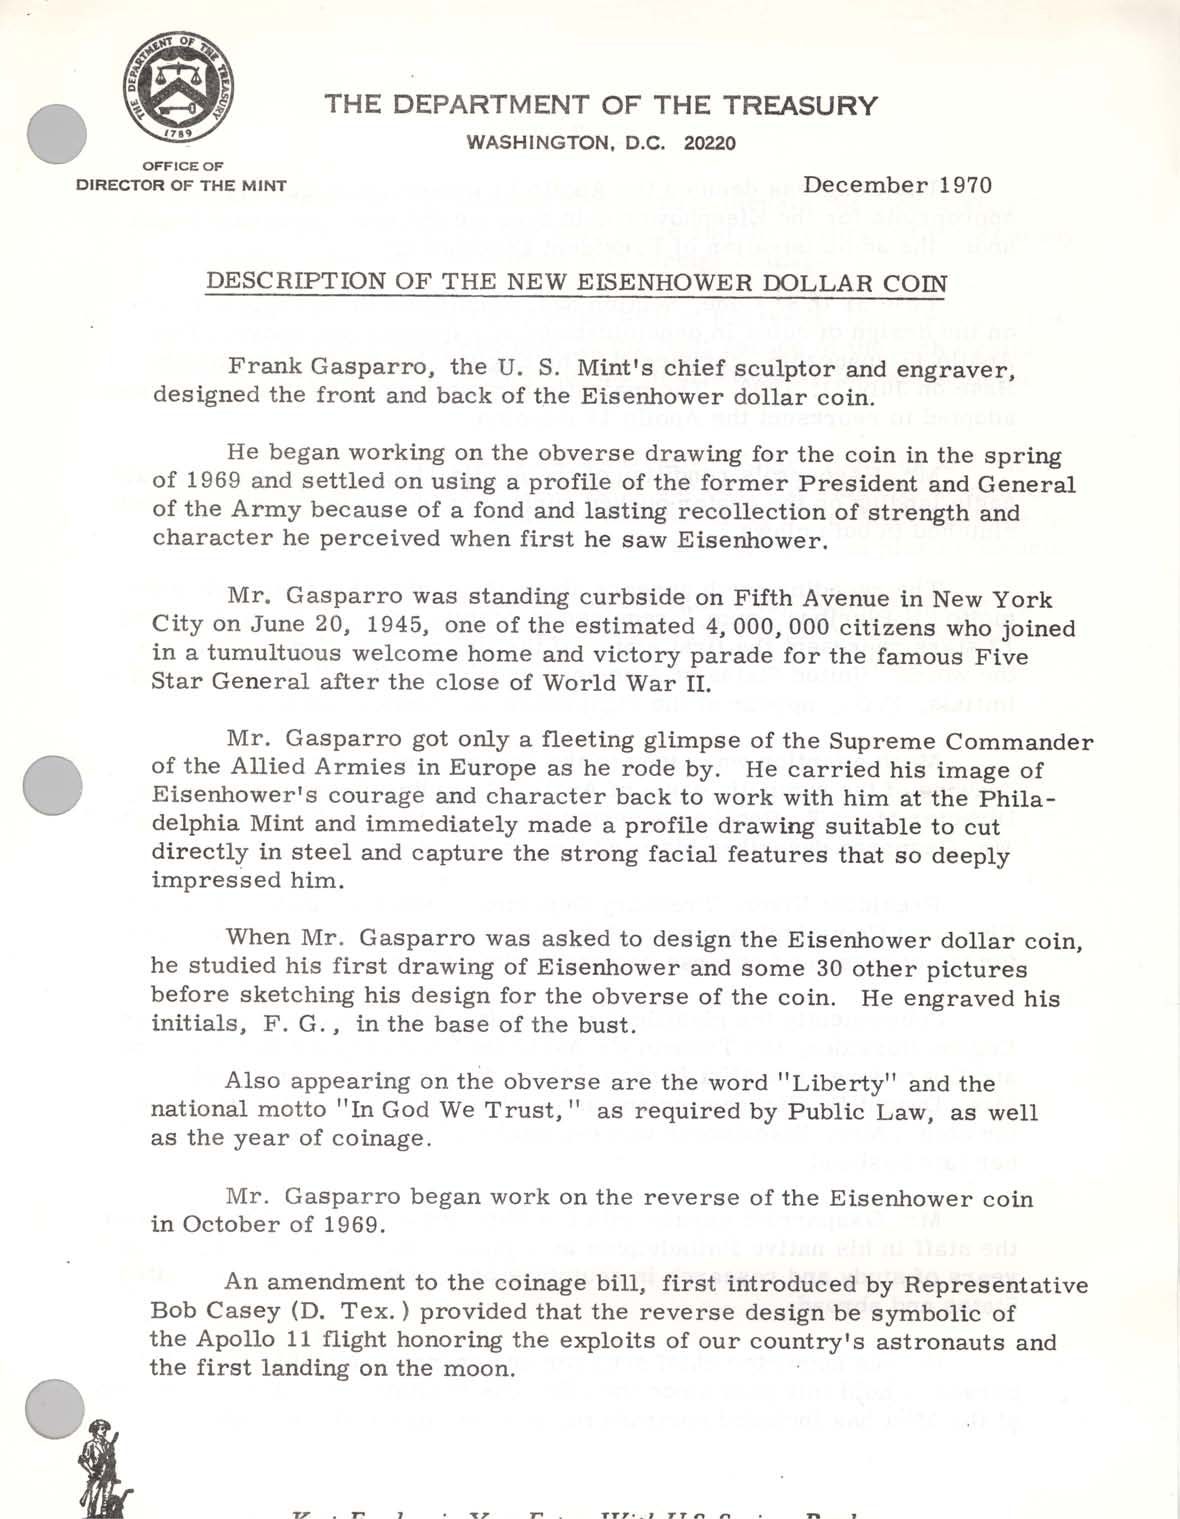 Description of New Eisenhower Dollar, Page 1